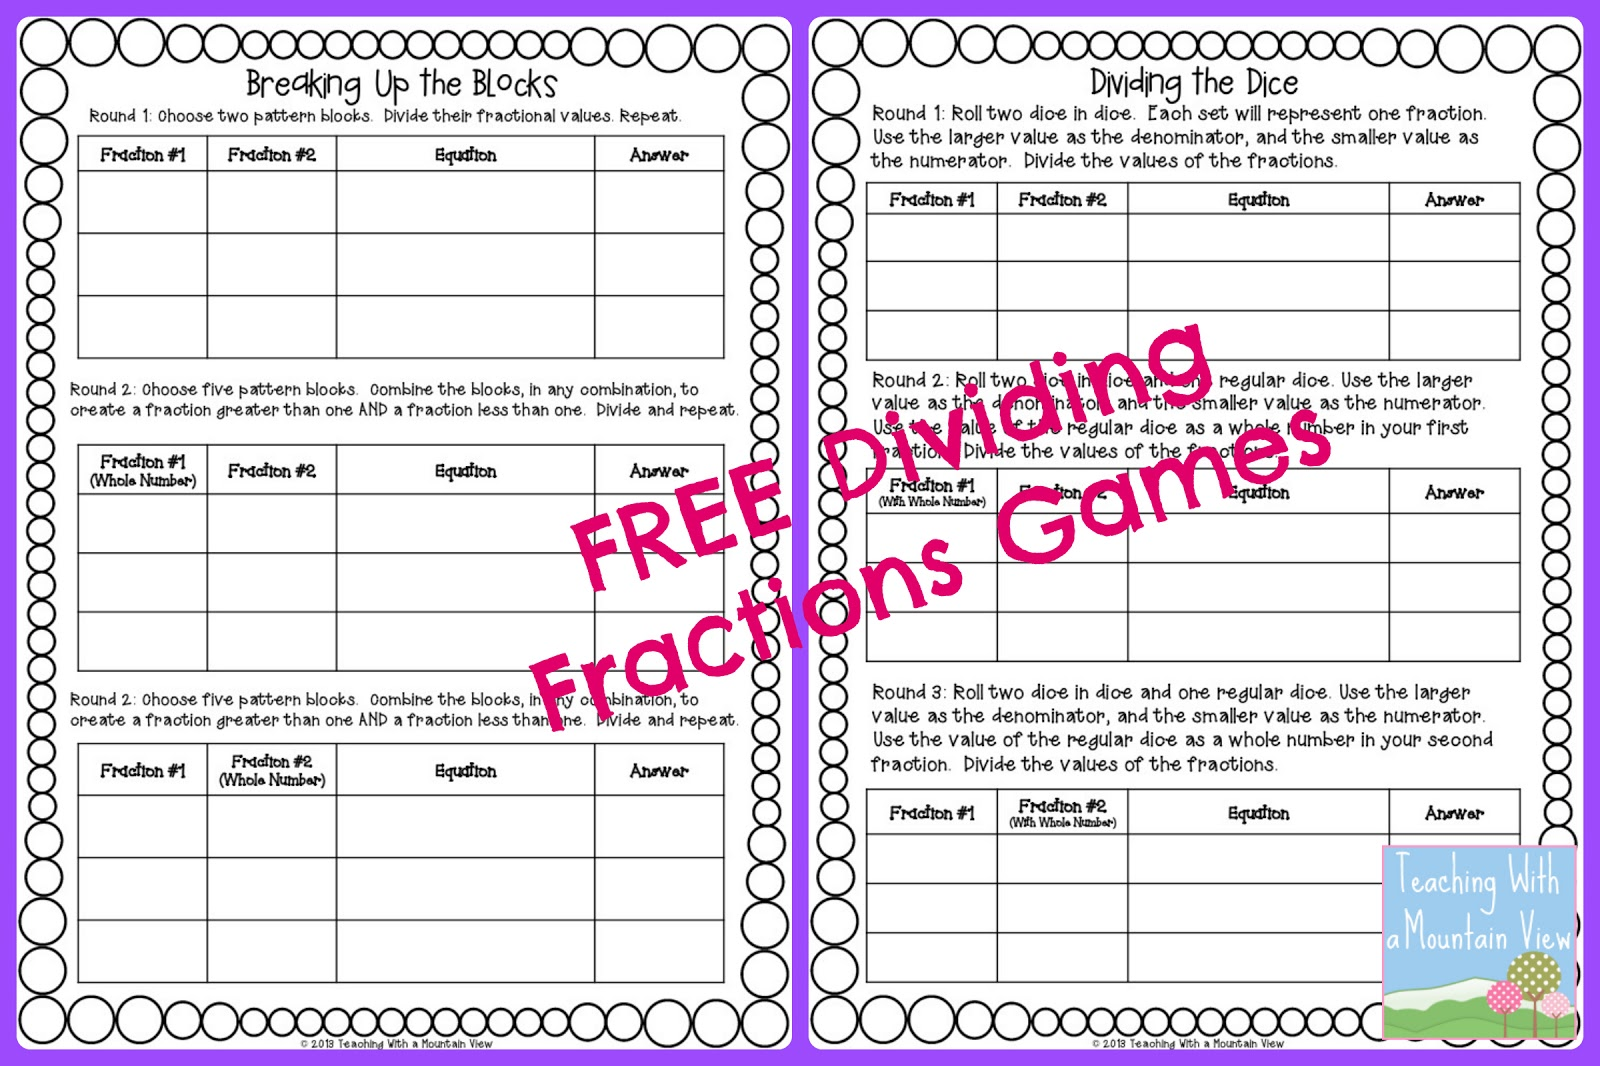 Teaching With a Mountain View Dividing Fractions Anchor Chart – Worksheet on Dividing Fractions